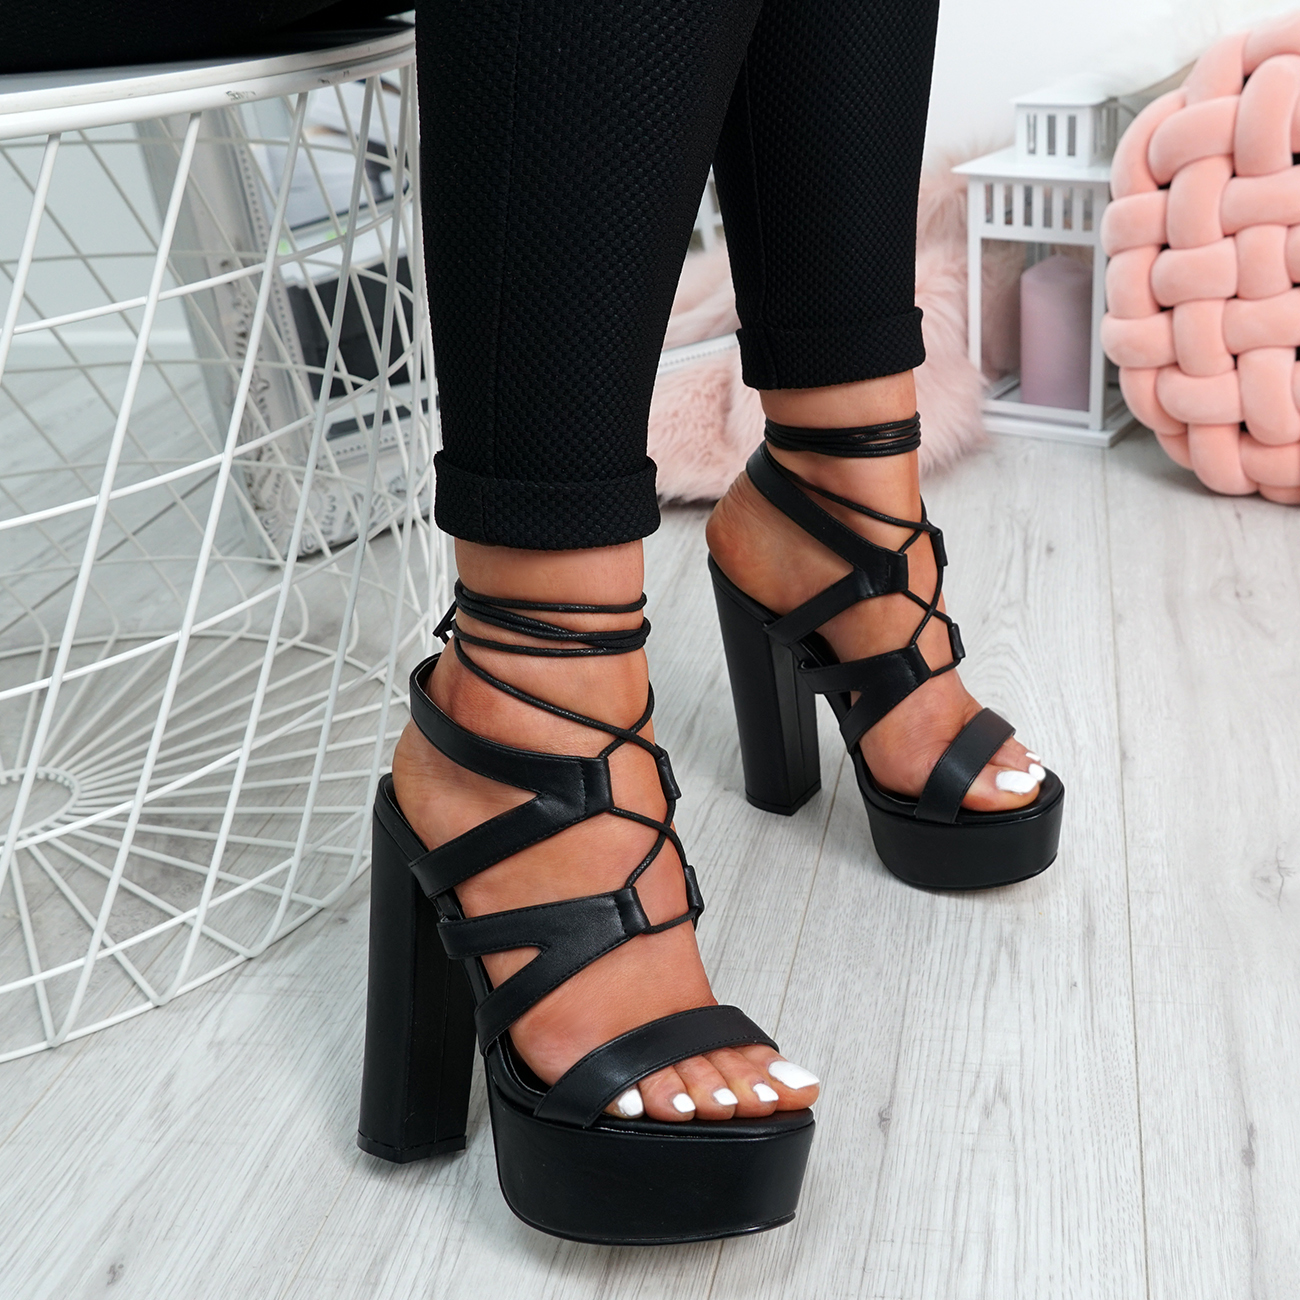 Ladies-Cross-Lace-High-Block-Heel-Sandals-Womens-Platforms-Peep-Toe-Shoes-Size thumbnail 3